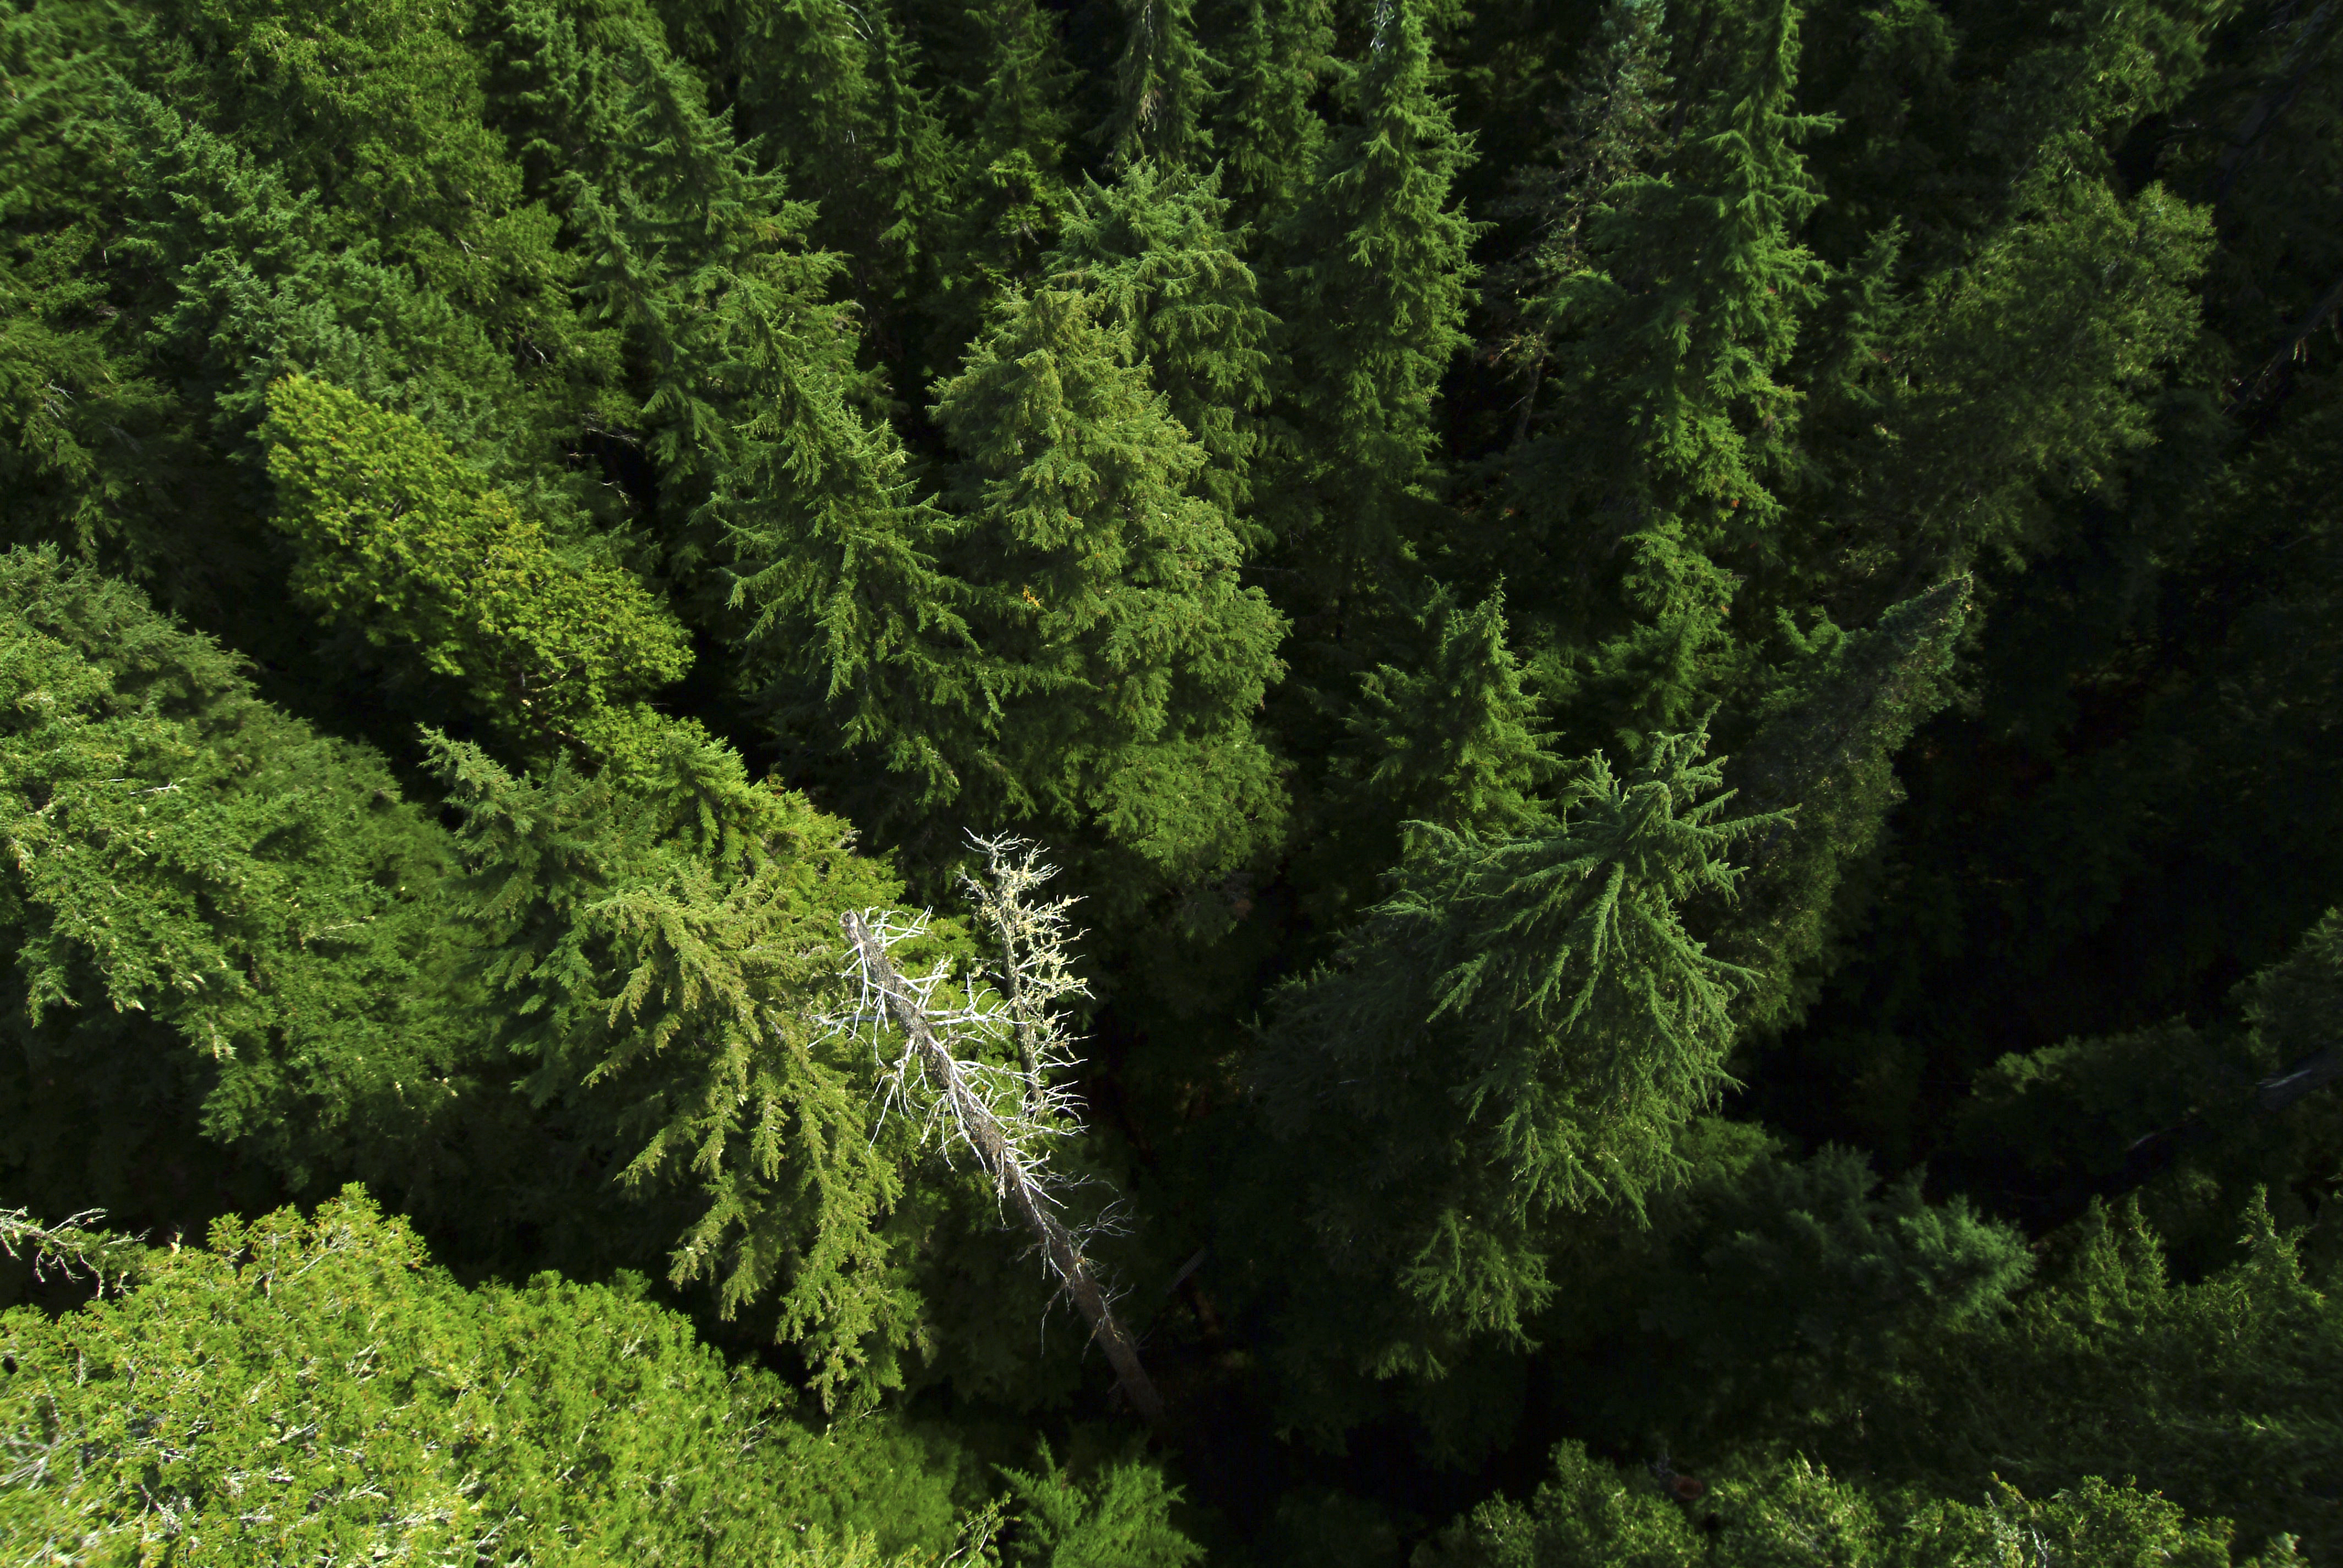 Looking down into treetops and dead snags